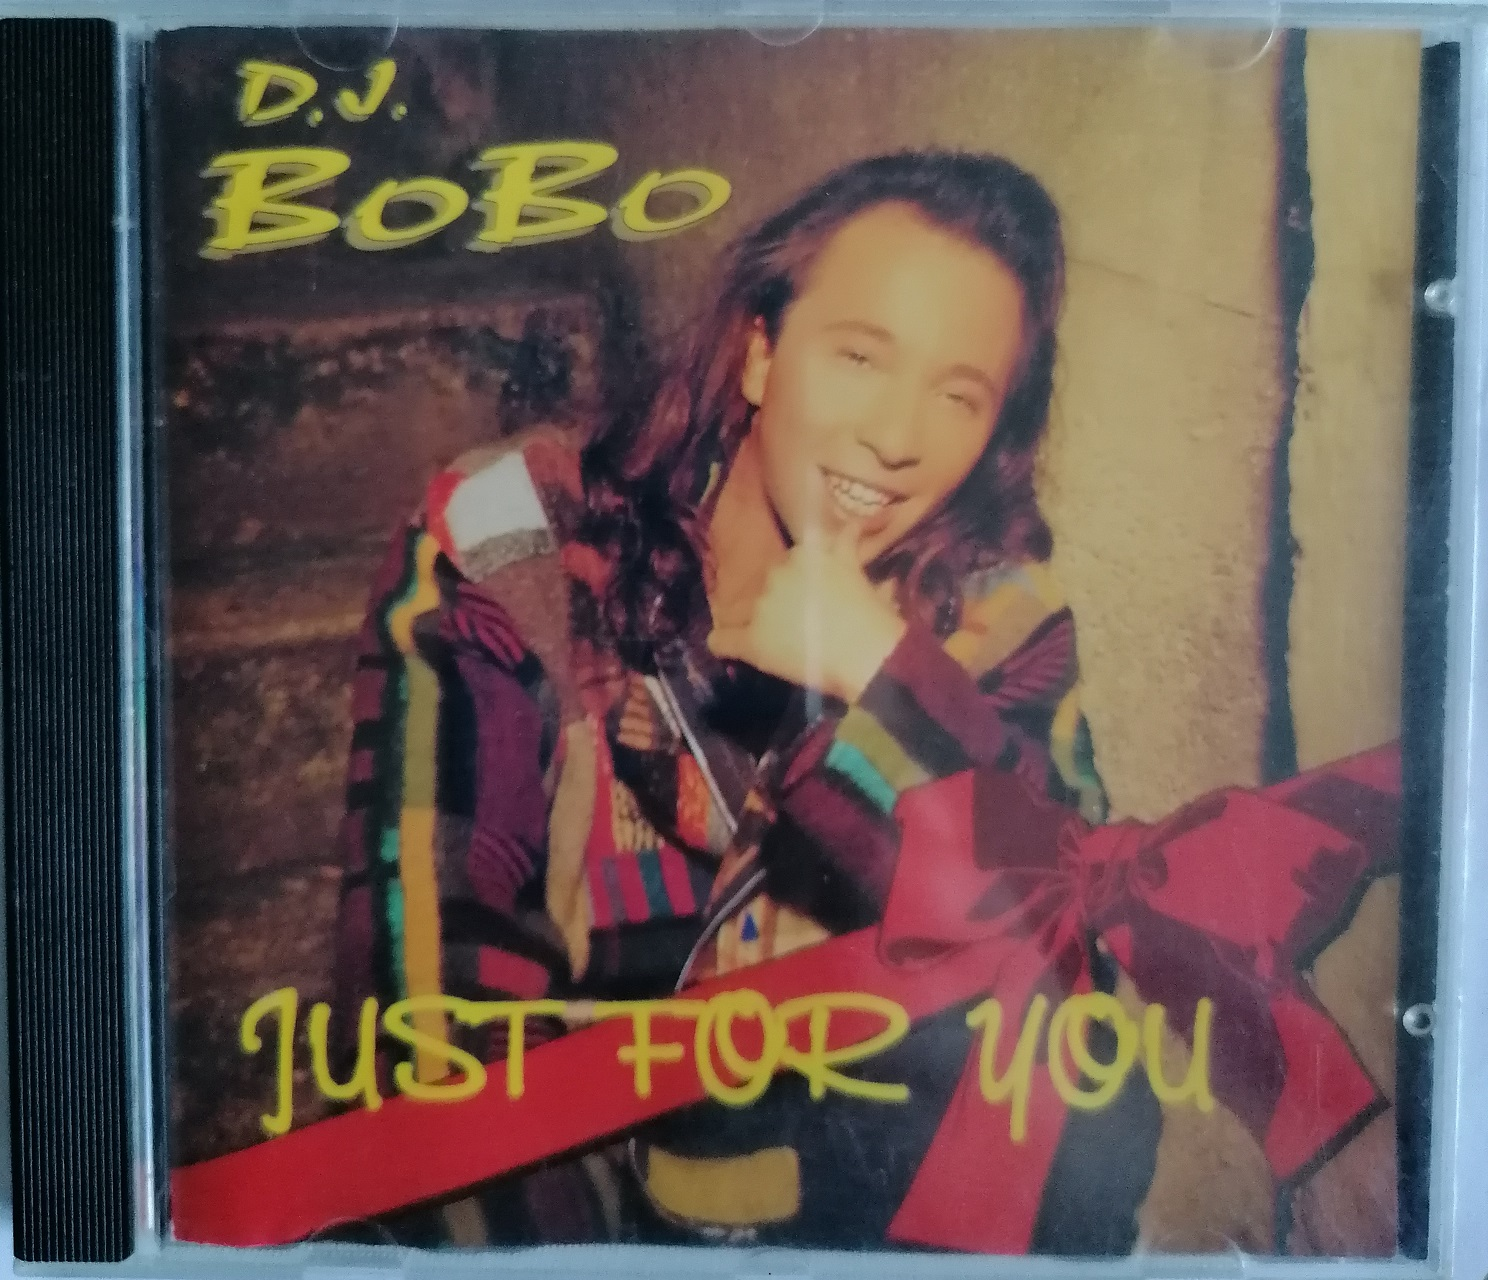 D.J. BoBo - Just for you - CD